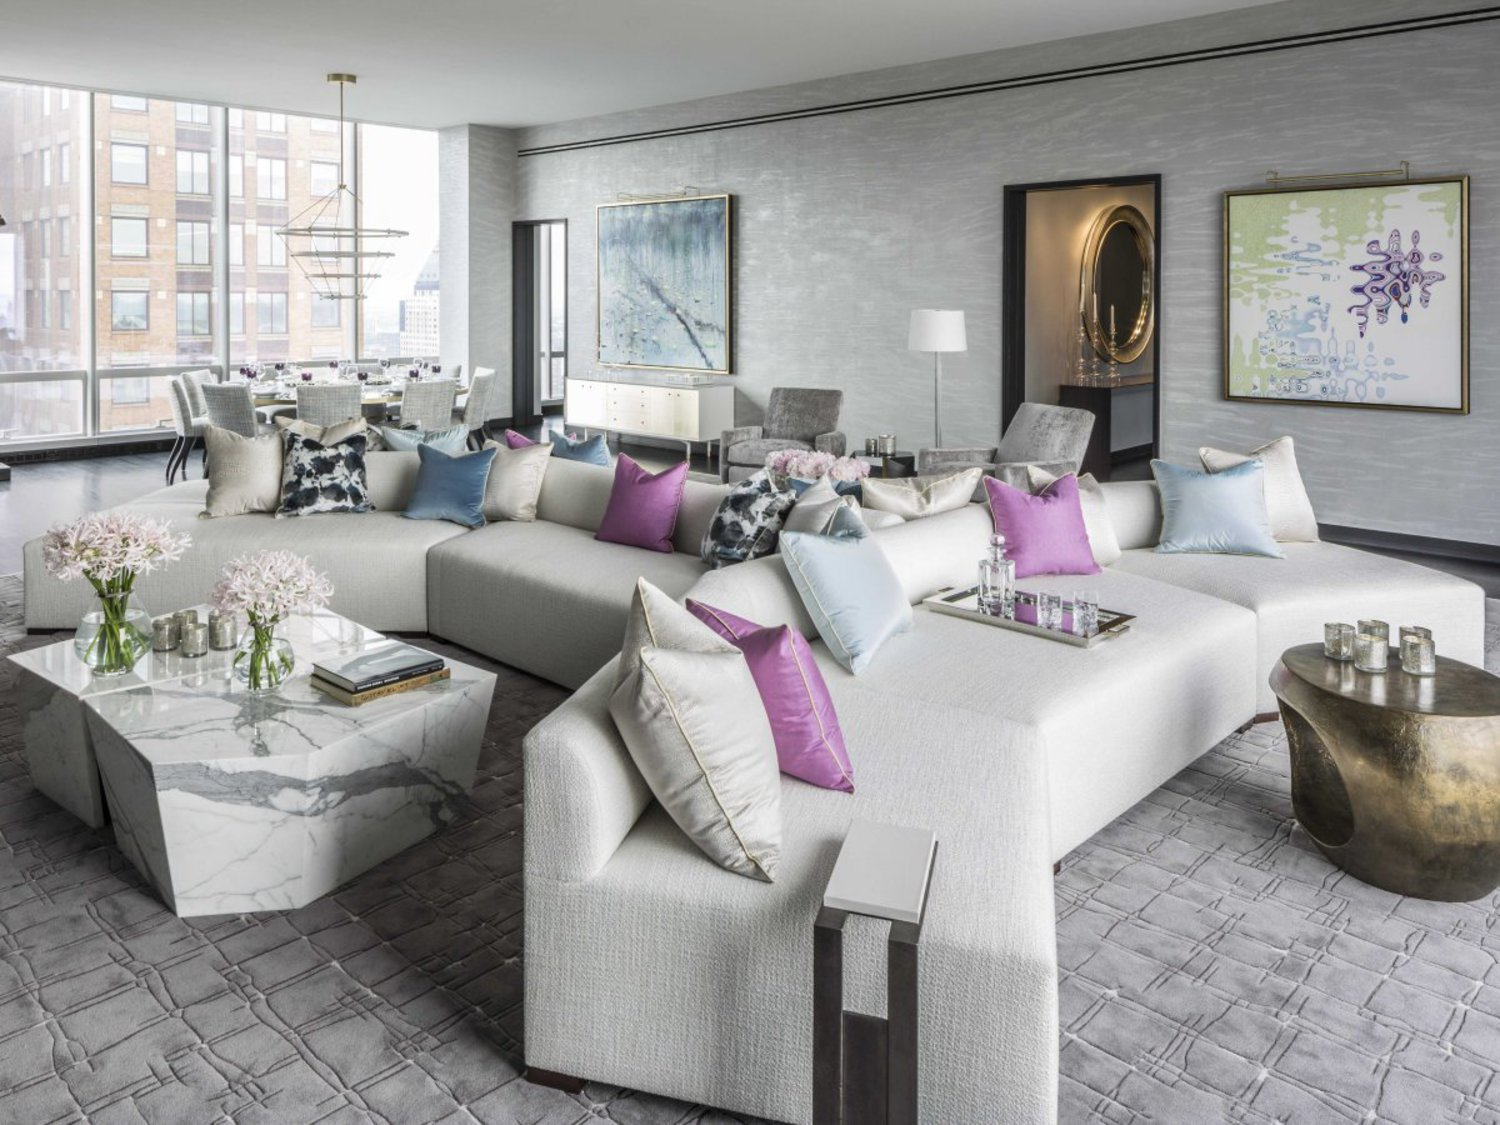 The so-called grand salon runs the length of the apartment and has nearly 12-foot-tall ceilings.